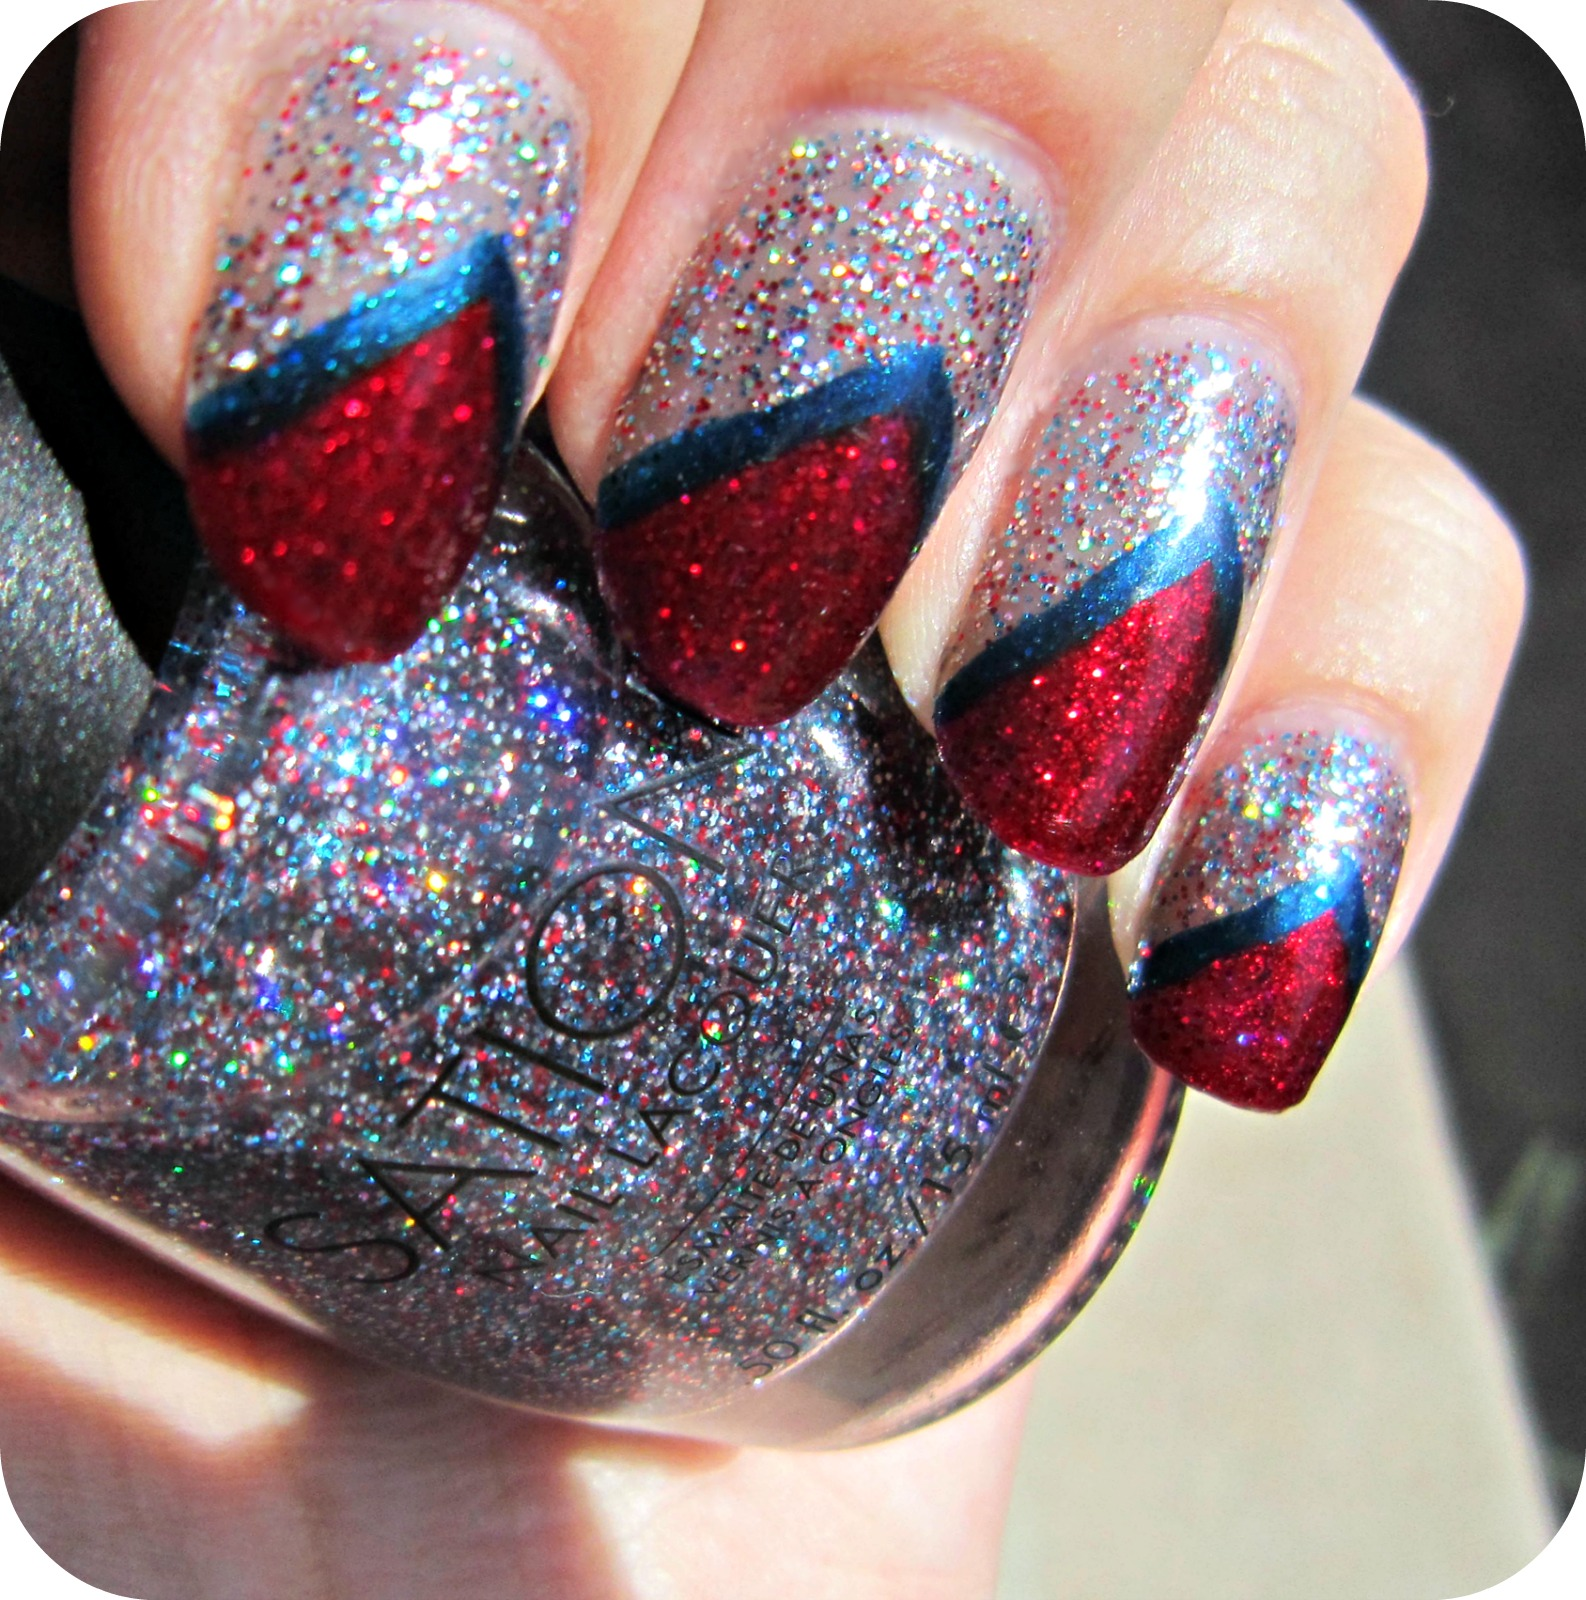 Nail Art Blue And Red: Concrete And Nail Polish: Red, White, & Blue Nails